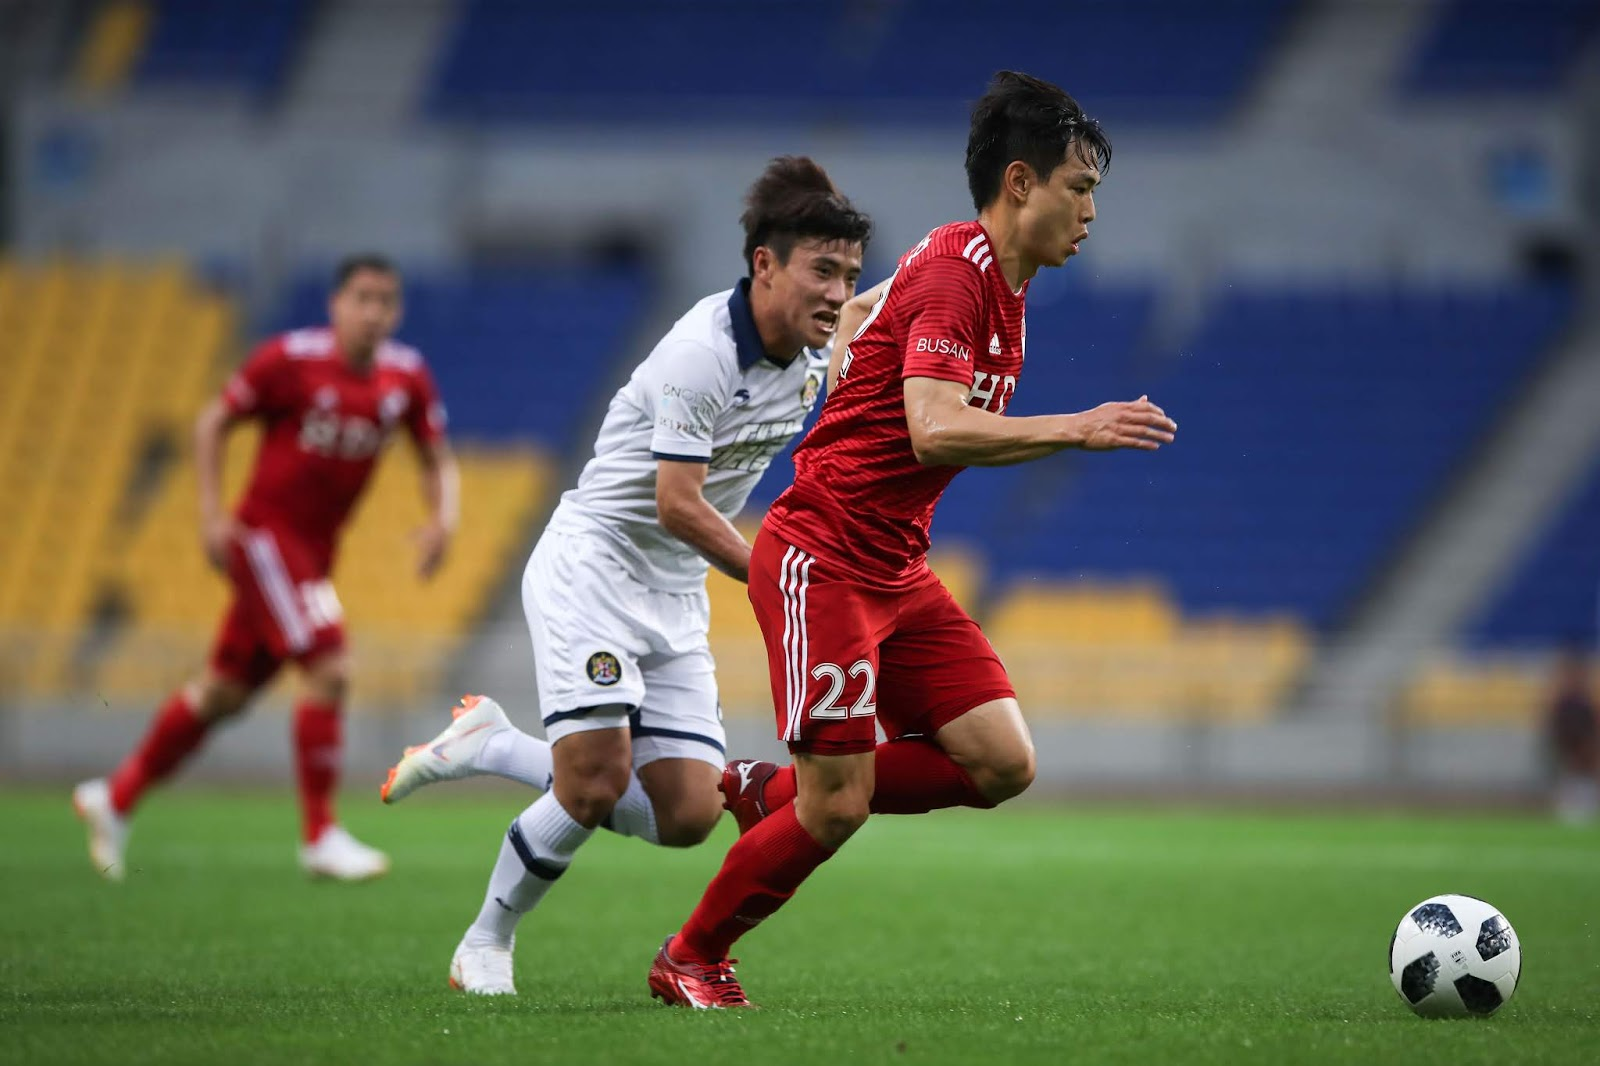 Preview: Busan IPark vs Daejeon Citizen K League 2